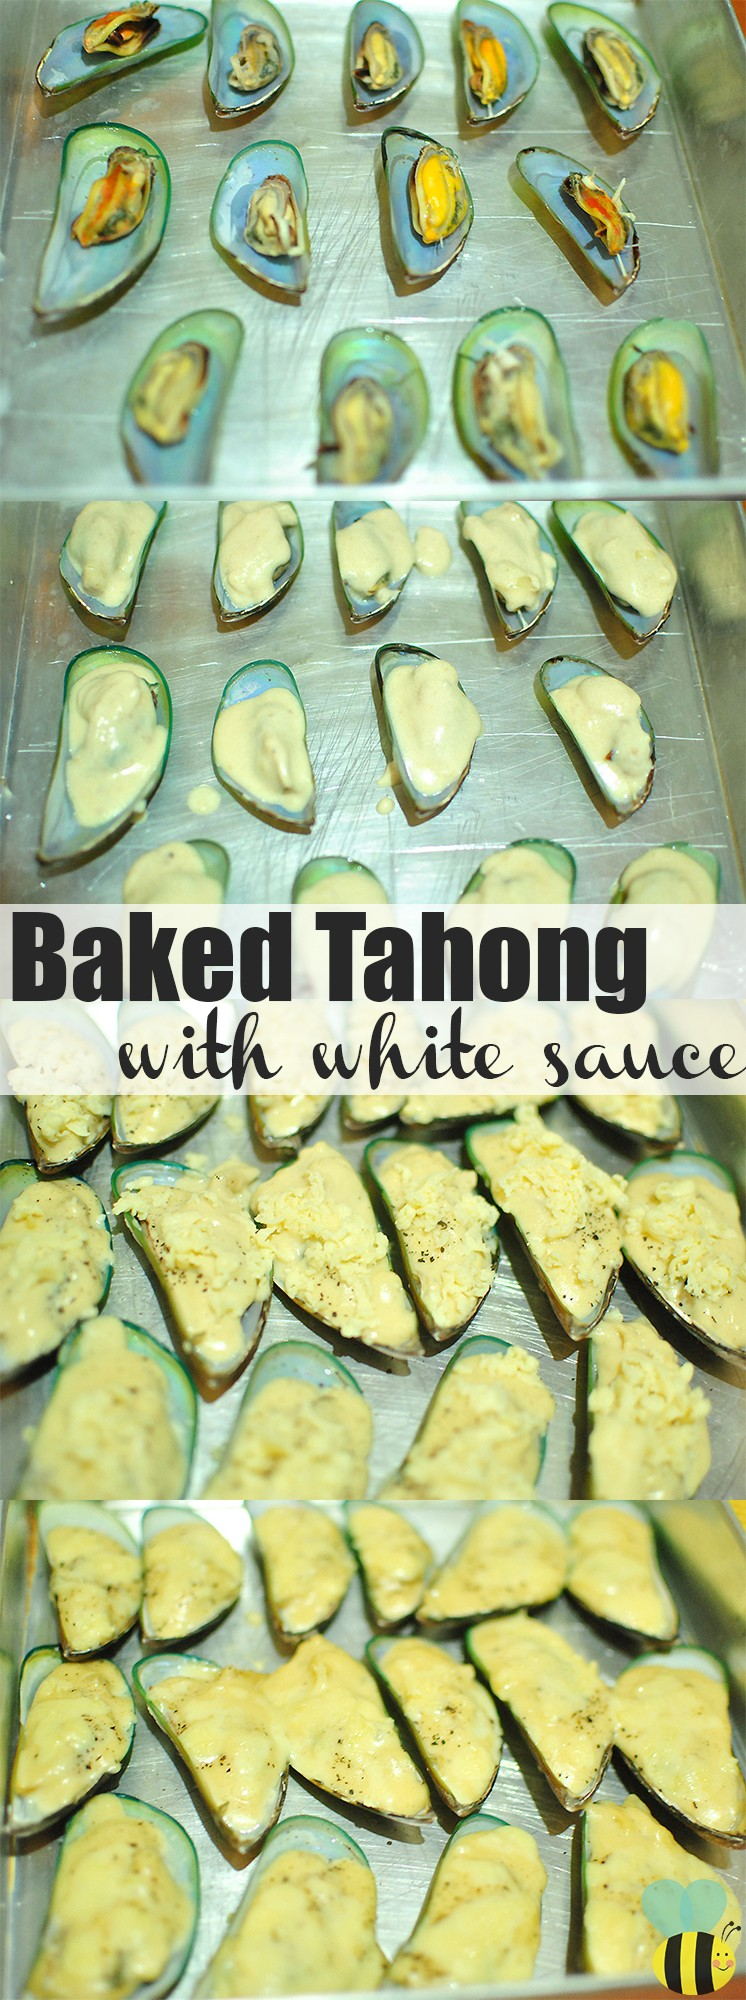 baked tahong with white sauce recipe